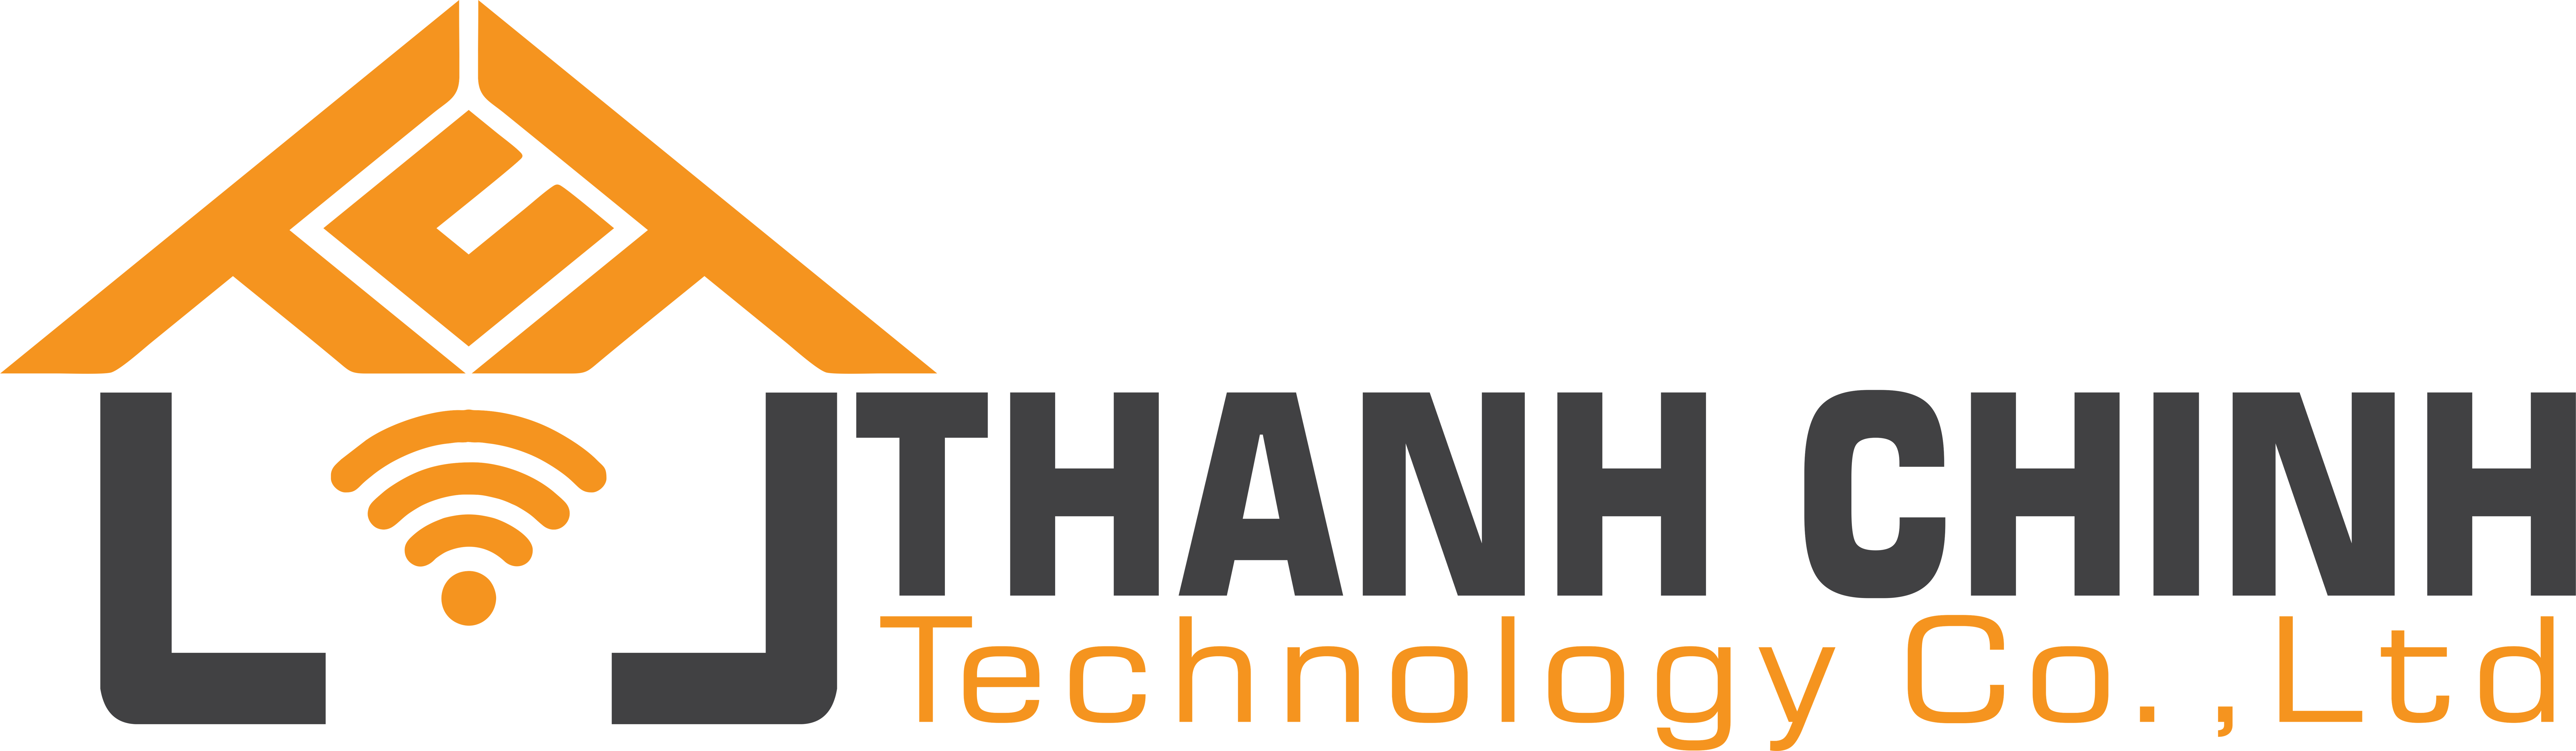 Thanh Chinh Technology